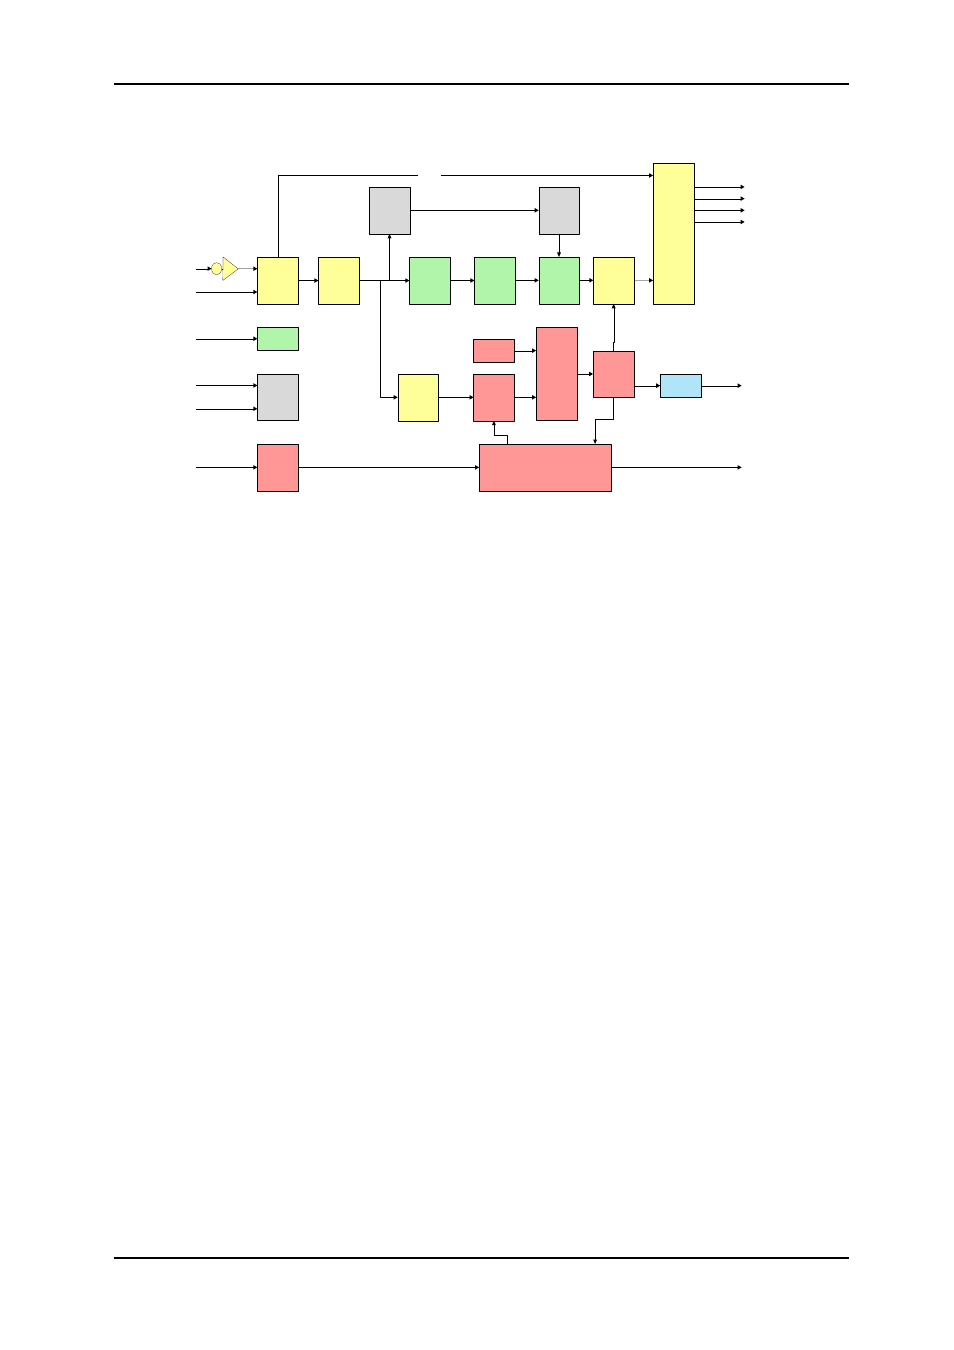 1 product description, 1 the core functionality, 2 secondary functionality  | Nevion UDC-3G-XMUX4+ User Manual | Page 5 / 59